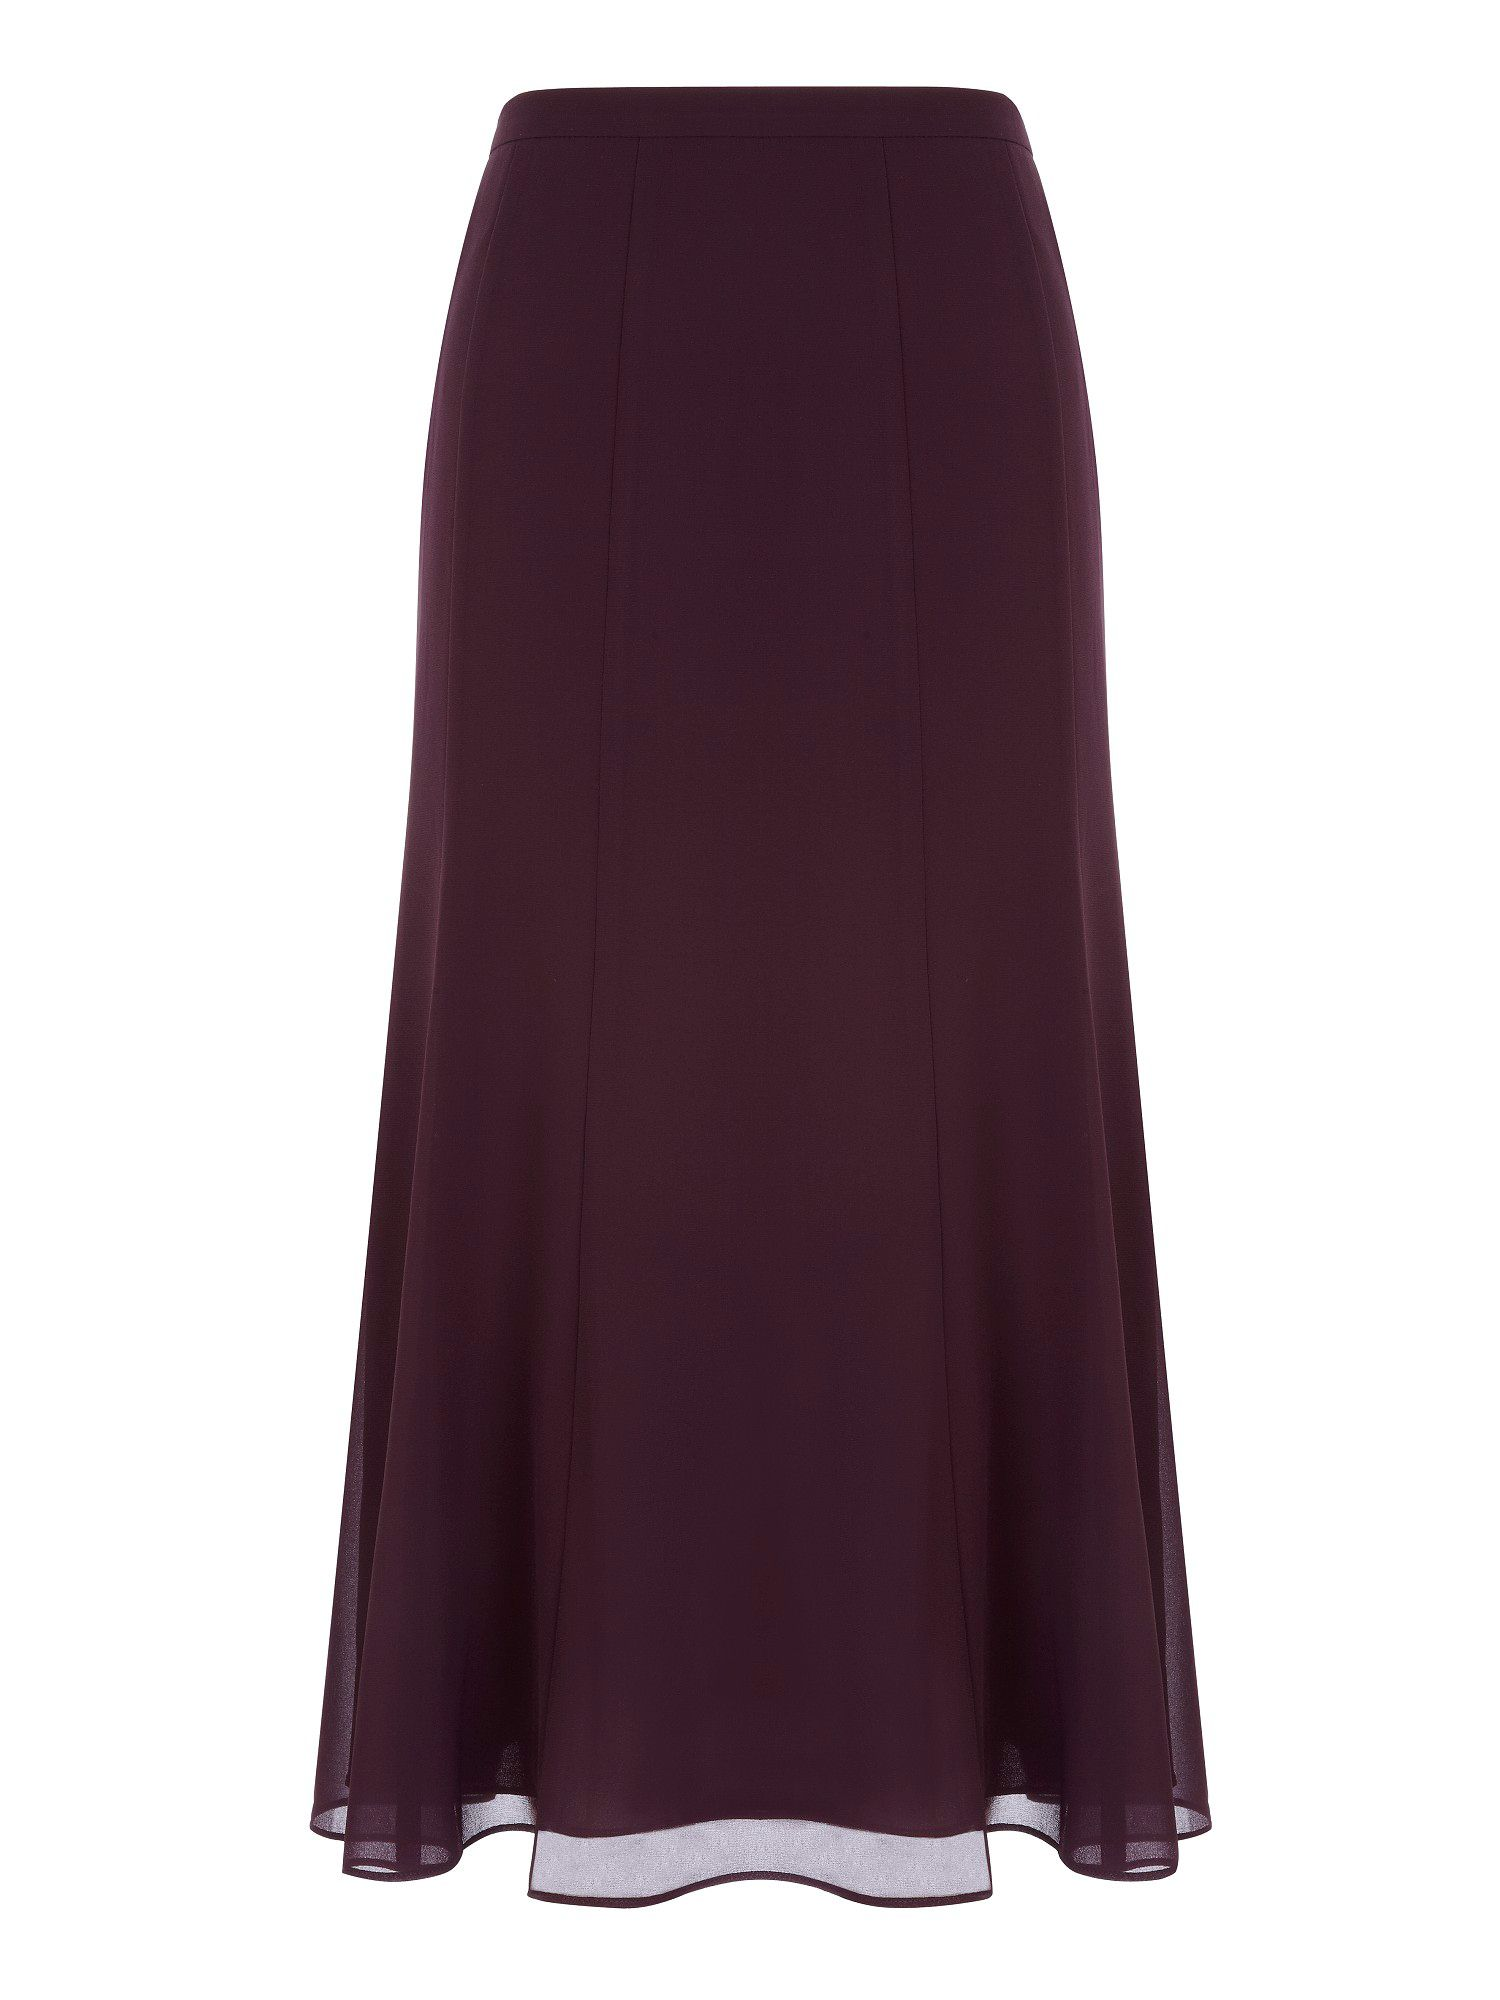 Jacques Vert Wine Chiffon Skirt In Red Purple Lyst